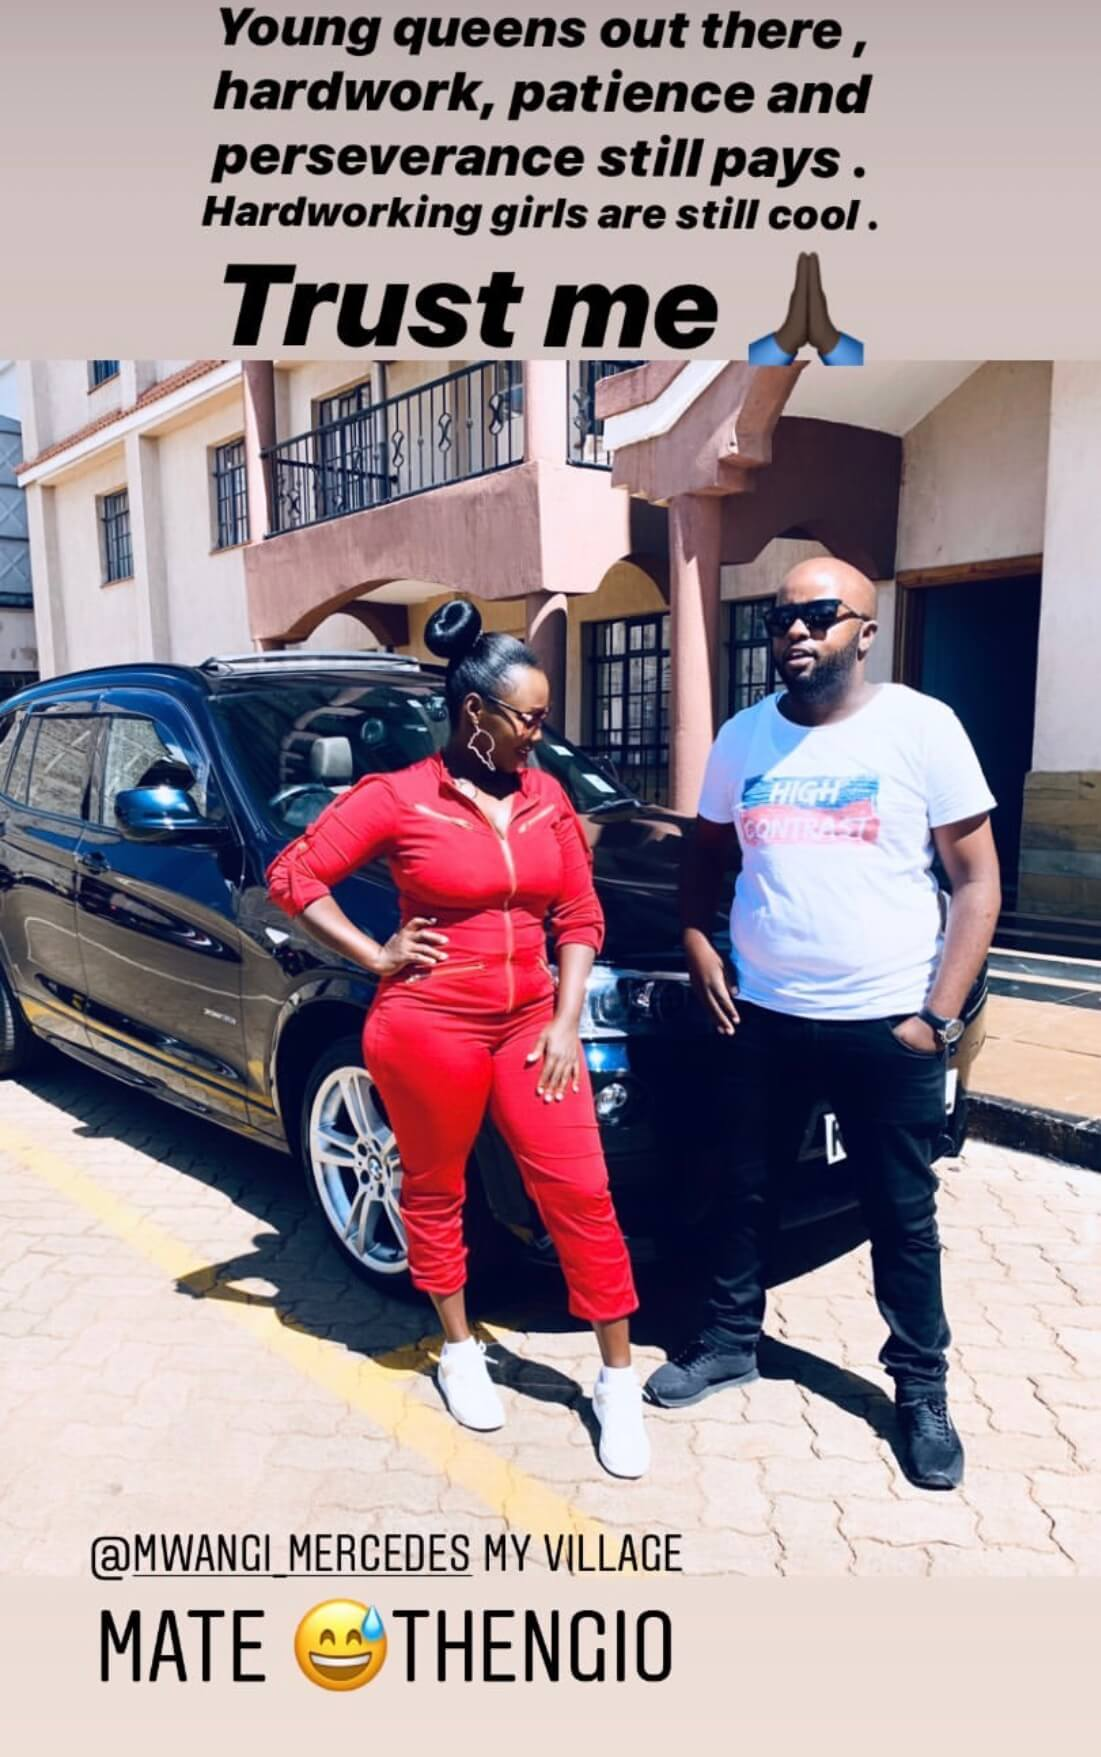 Phil Karanja k 1 - See God! Kate Actress's hubby buys her a car worth your whole year's rent as a push gift